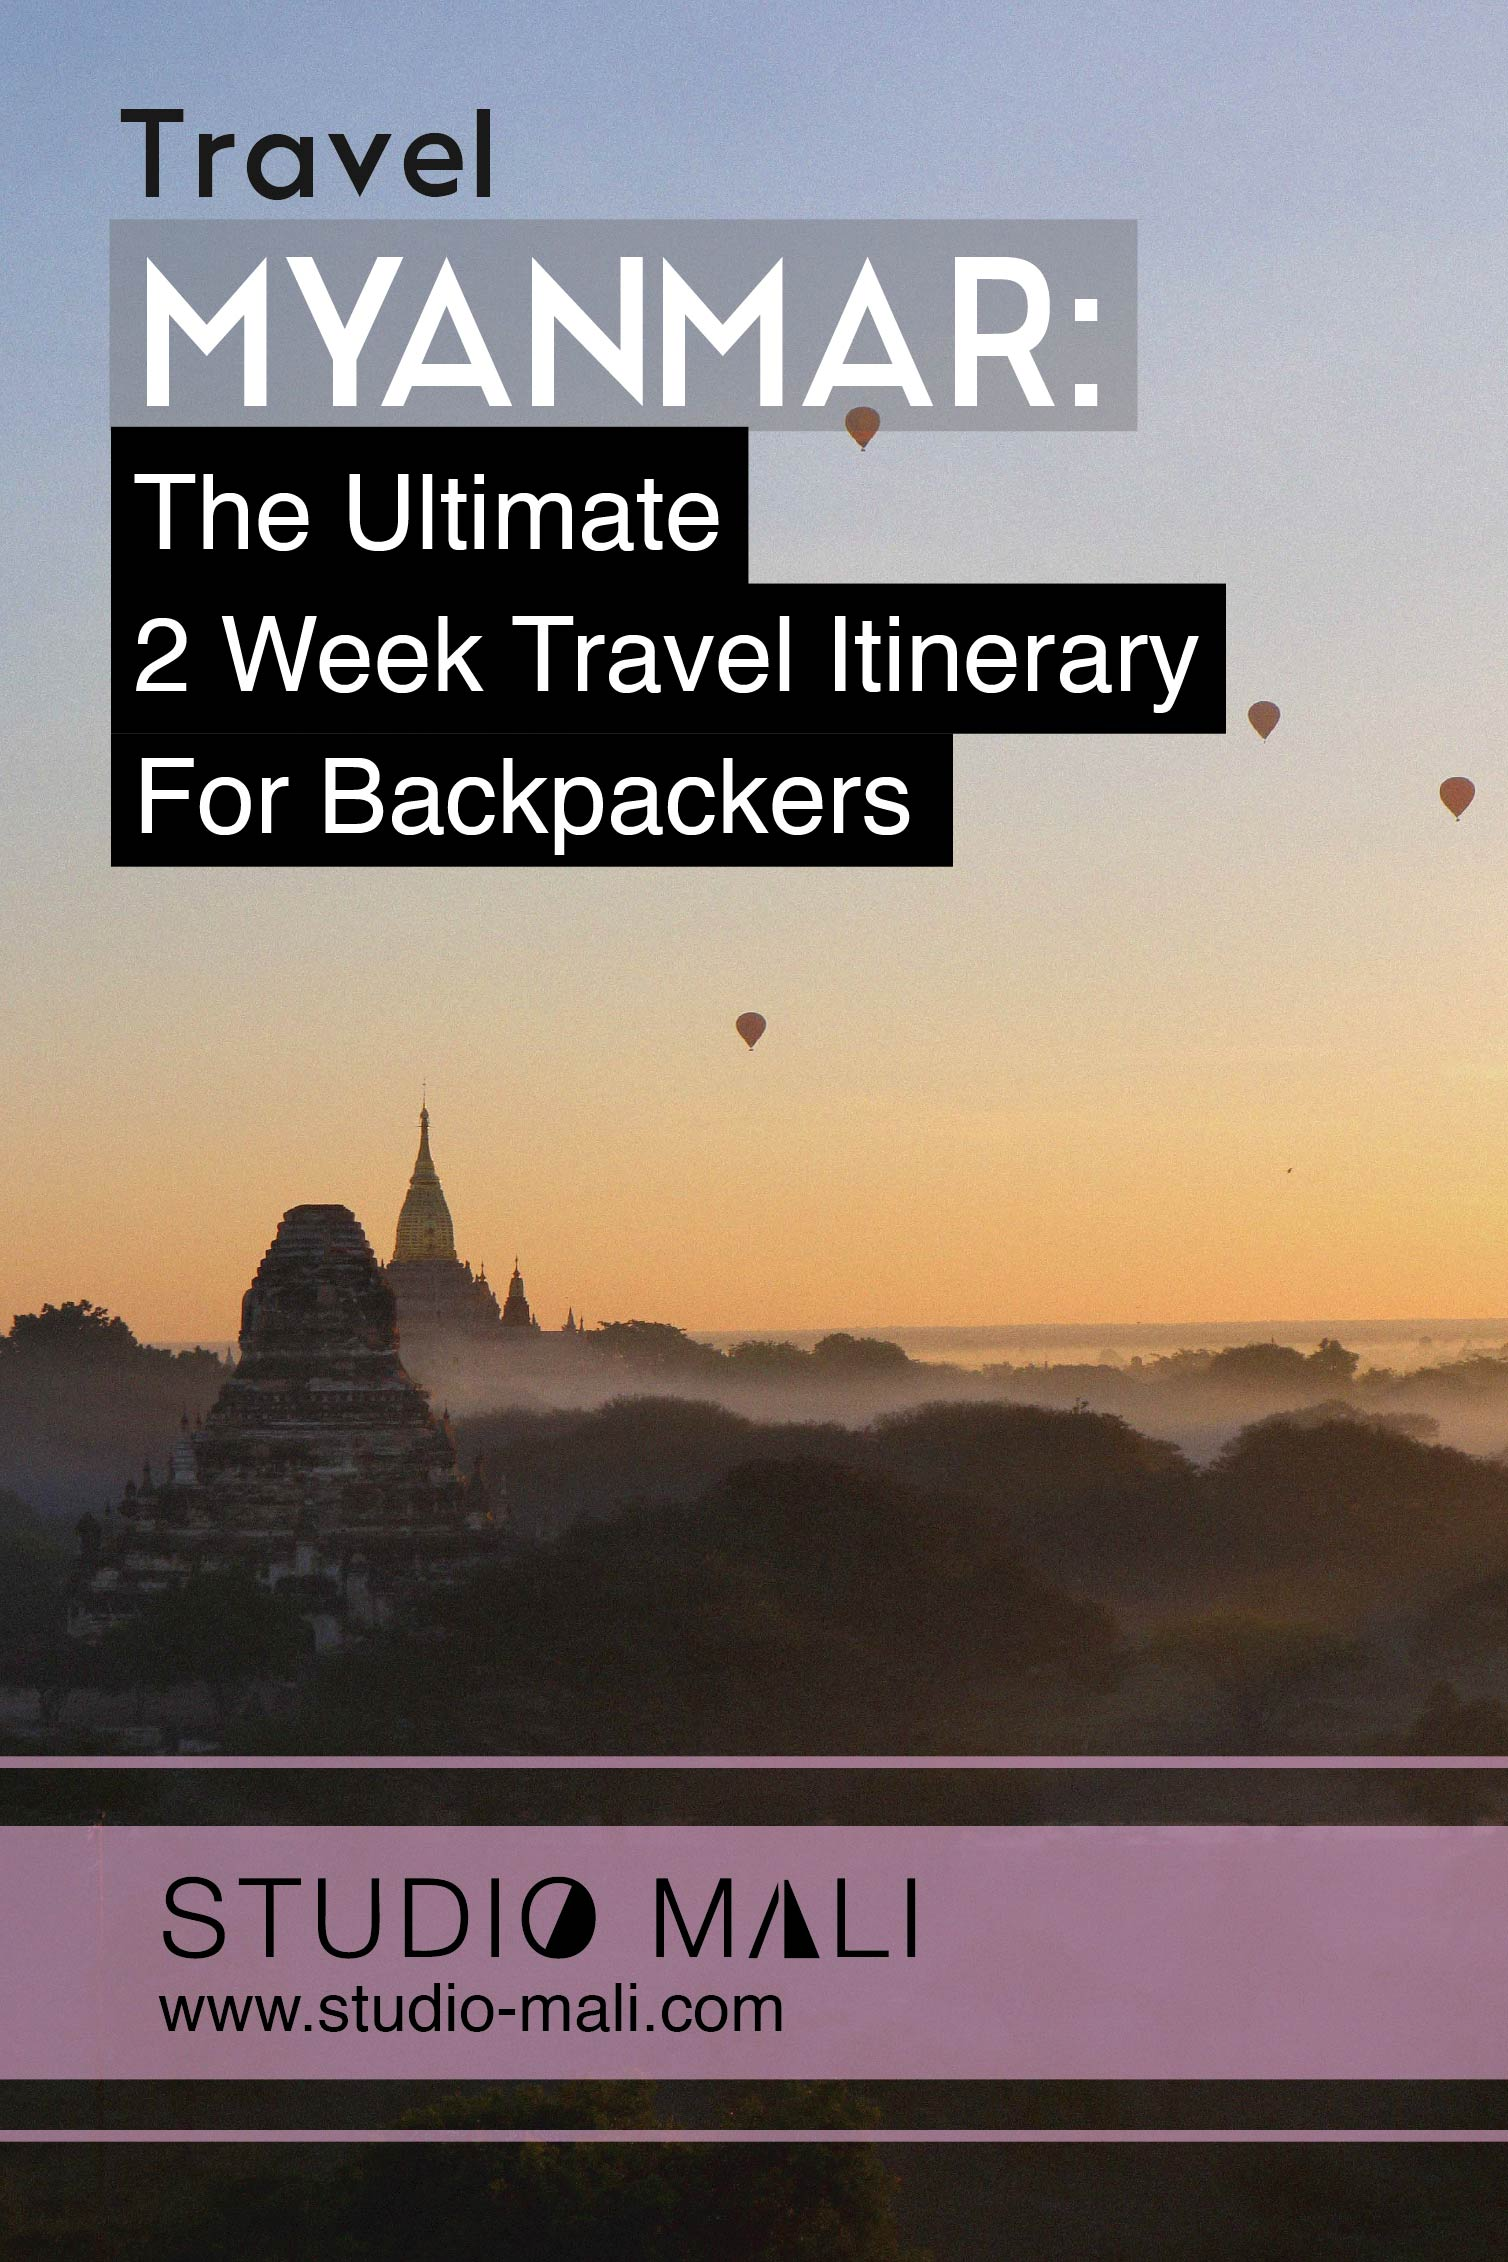 Myanmar - The Ultimate 2 Week Travel Itinerary For Backpackers, by Studio Mali